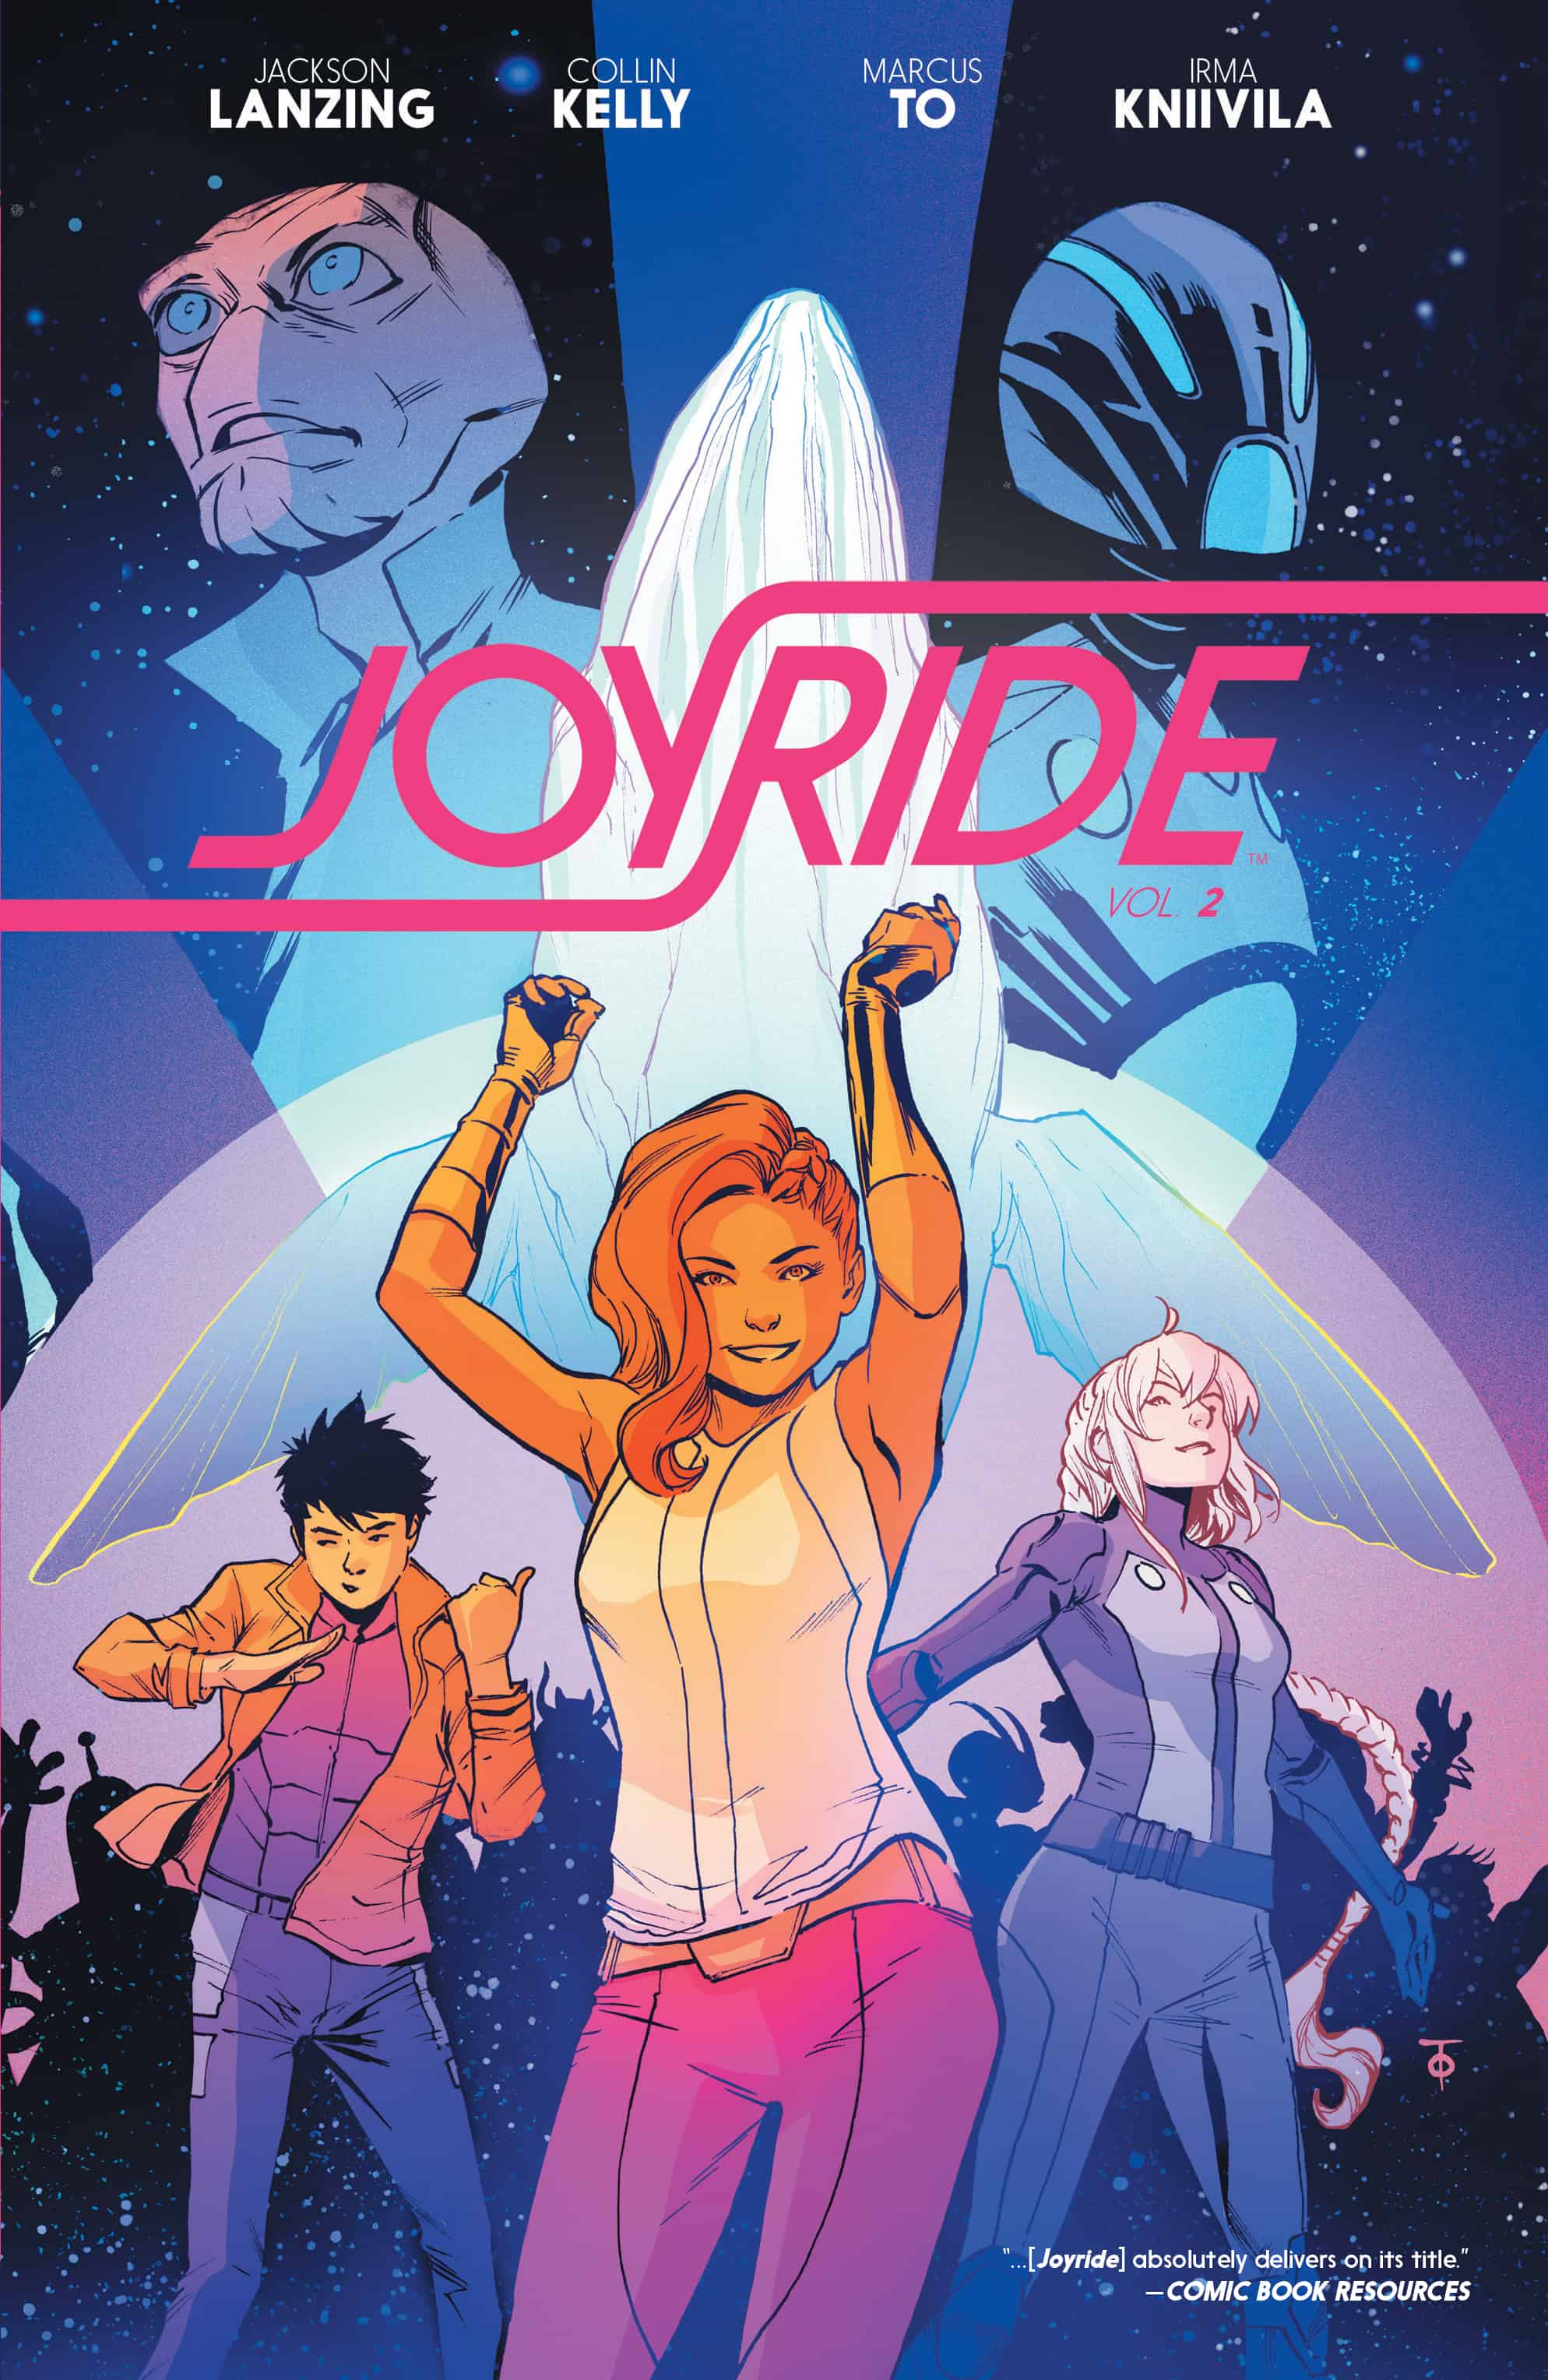 Joyride Vol. 2 SC